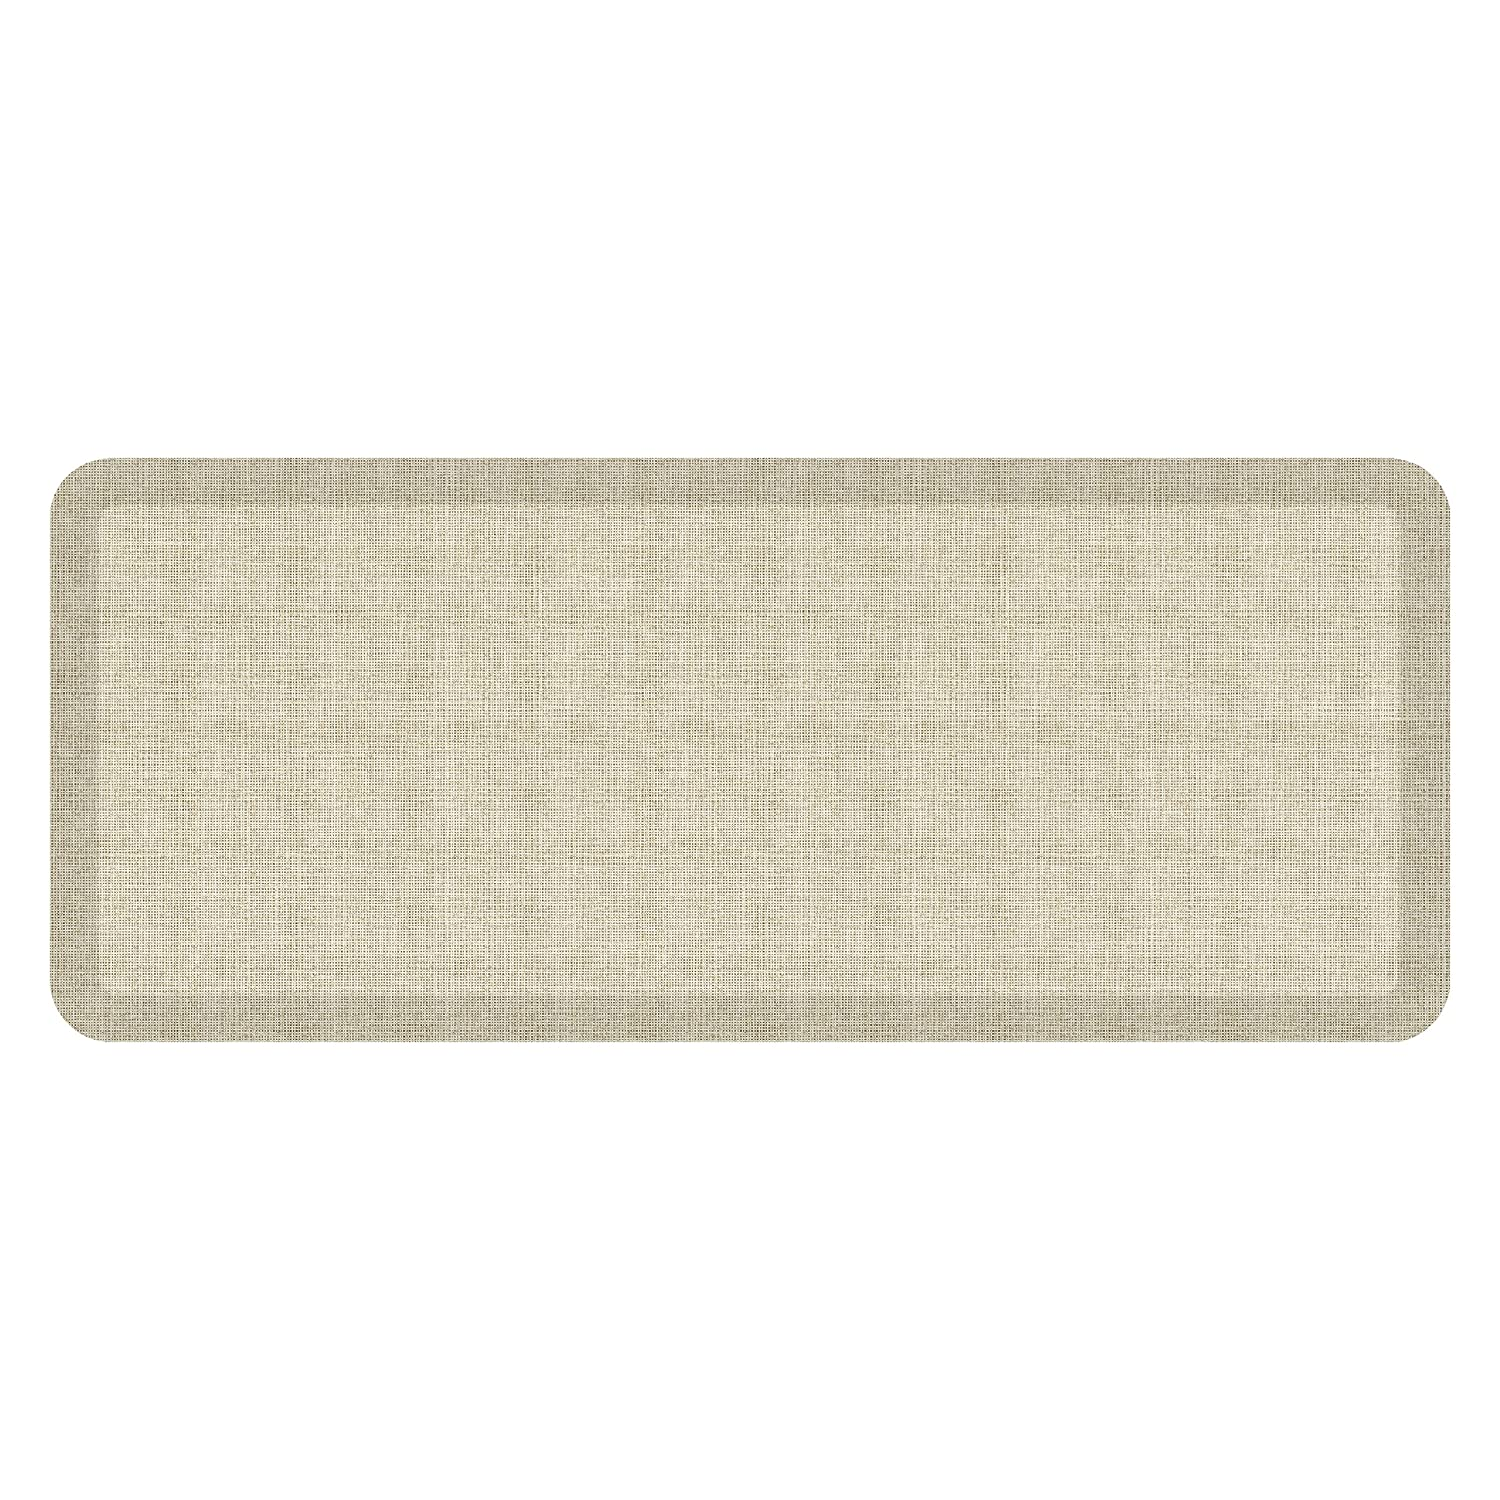 Tweed Antique White 20  x 48  NewLife by GelPro Designer Comfort Mat, 20 by 72-Inch, Lattice Mineral Grey